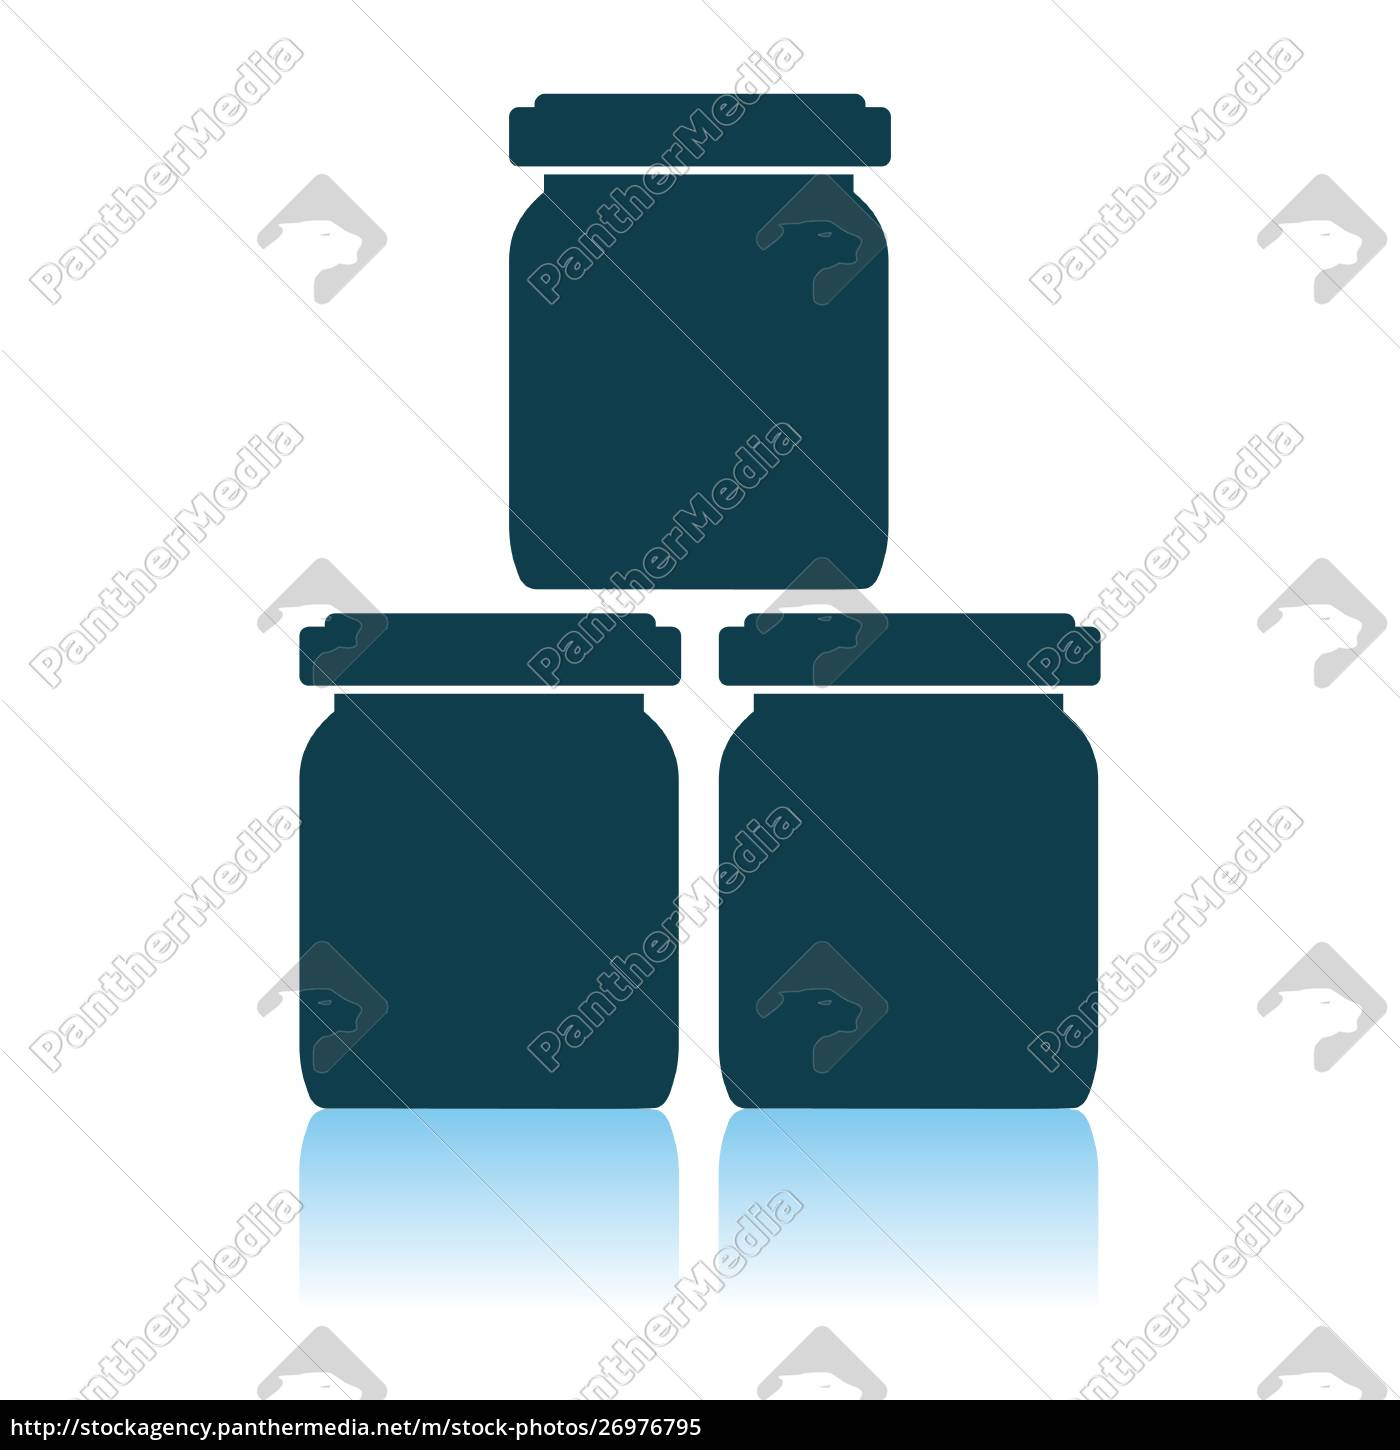 baby, glass, jars, icon - 26976795